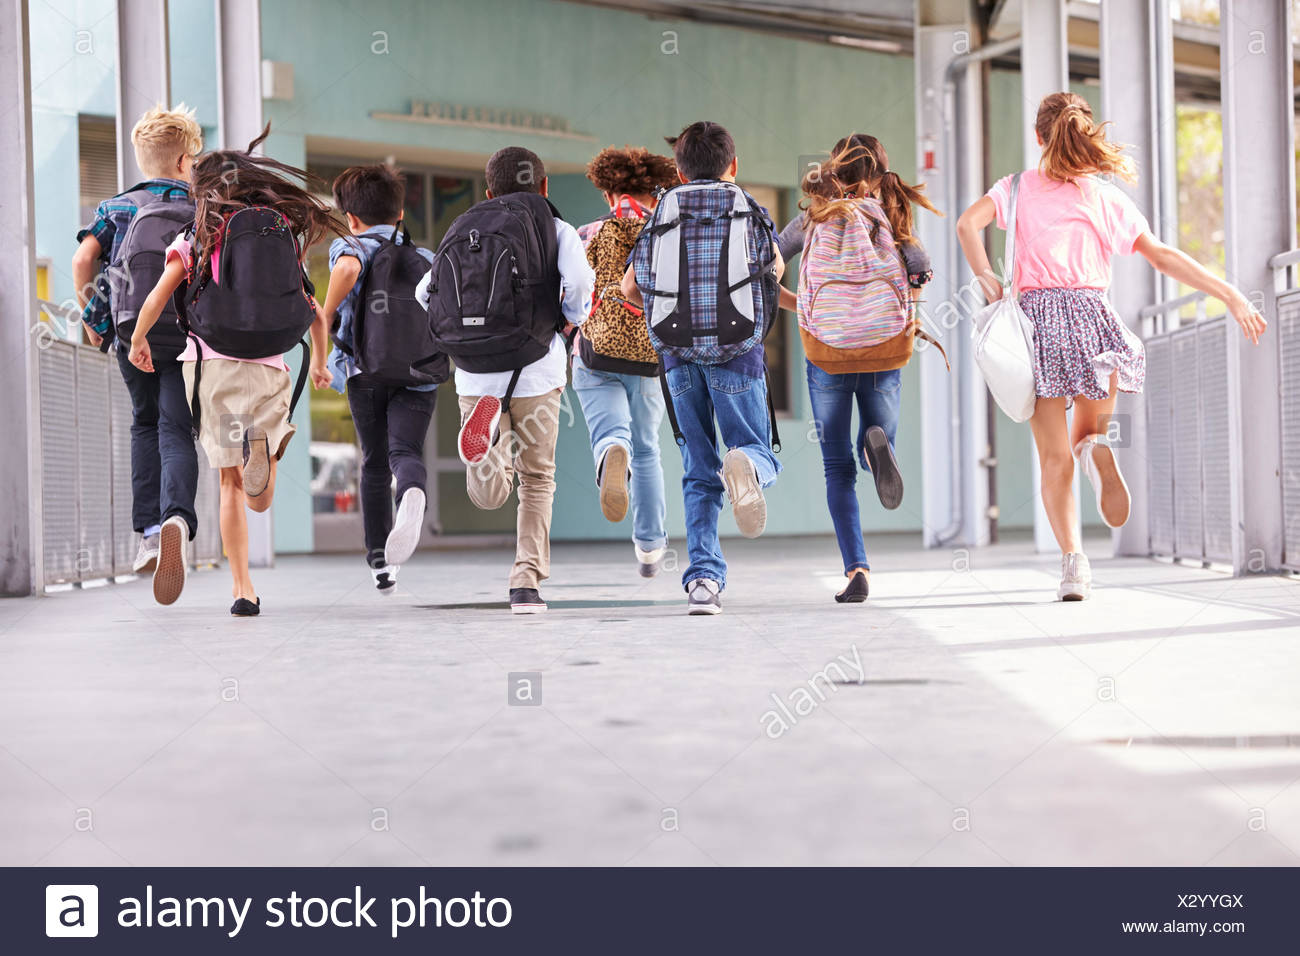 223ab43e2b4 Group of elementary school kids running at school, back view Stock ...